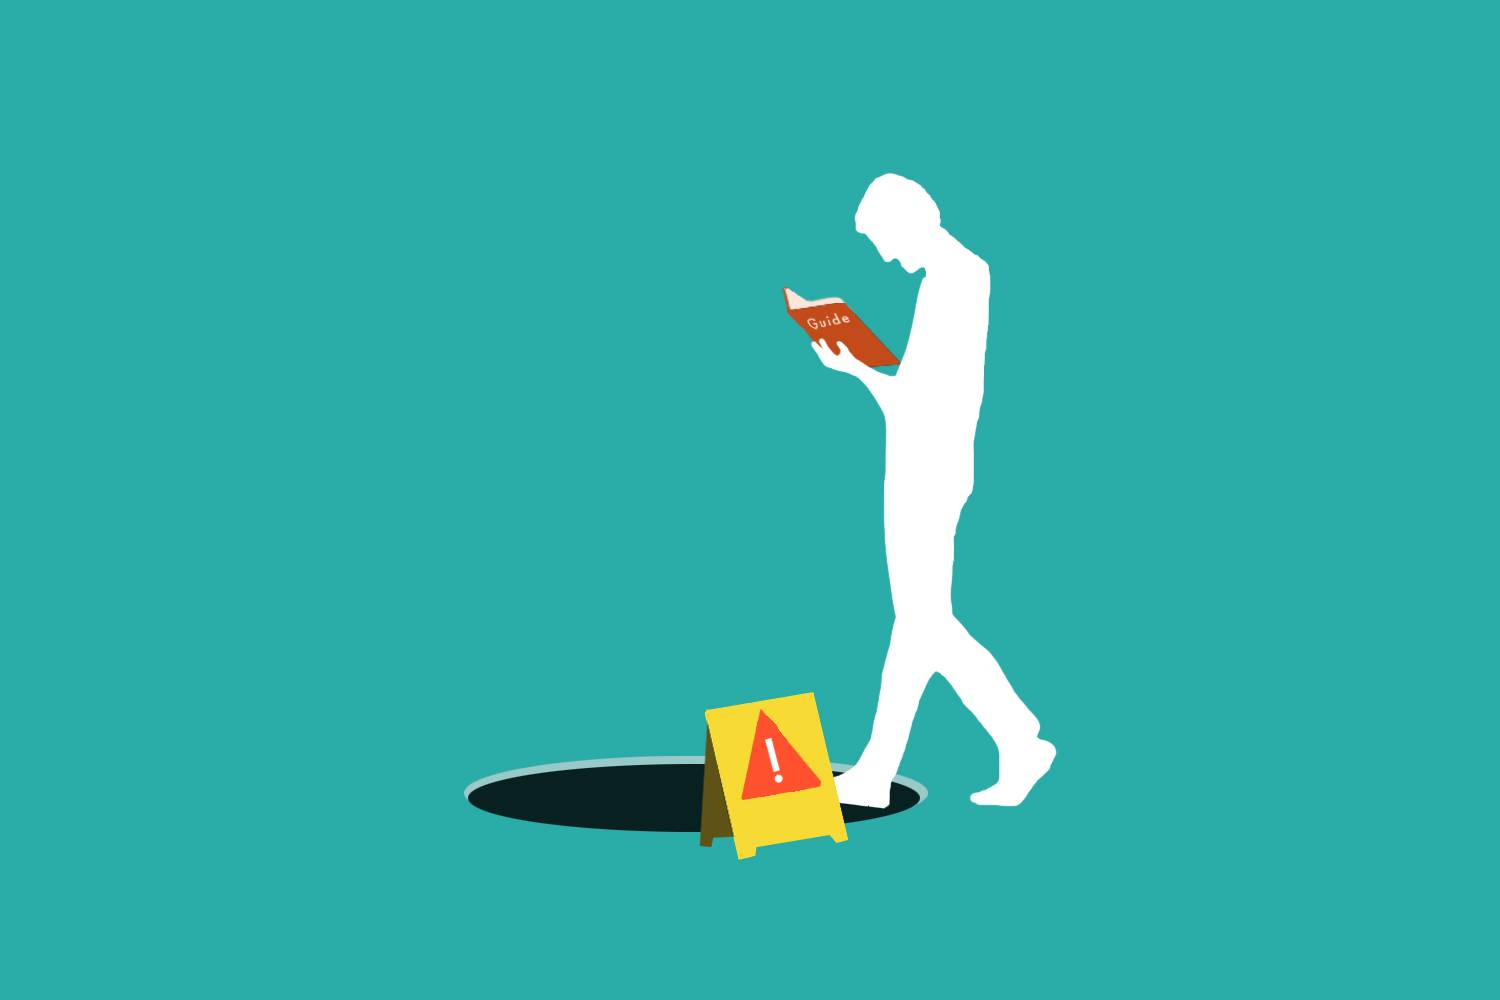 """Infographic of a man with his head in a book reading a """"Guide to Success"""" while stepping over a hole with a """"caution"""" sign next to it"""